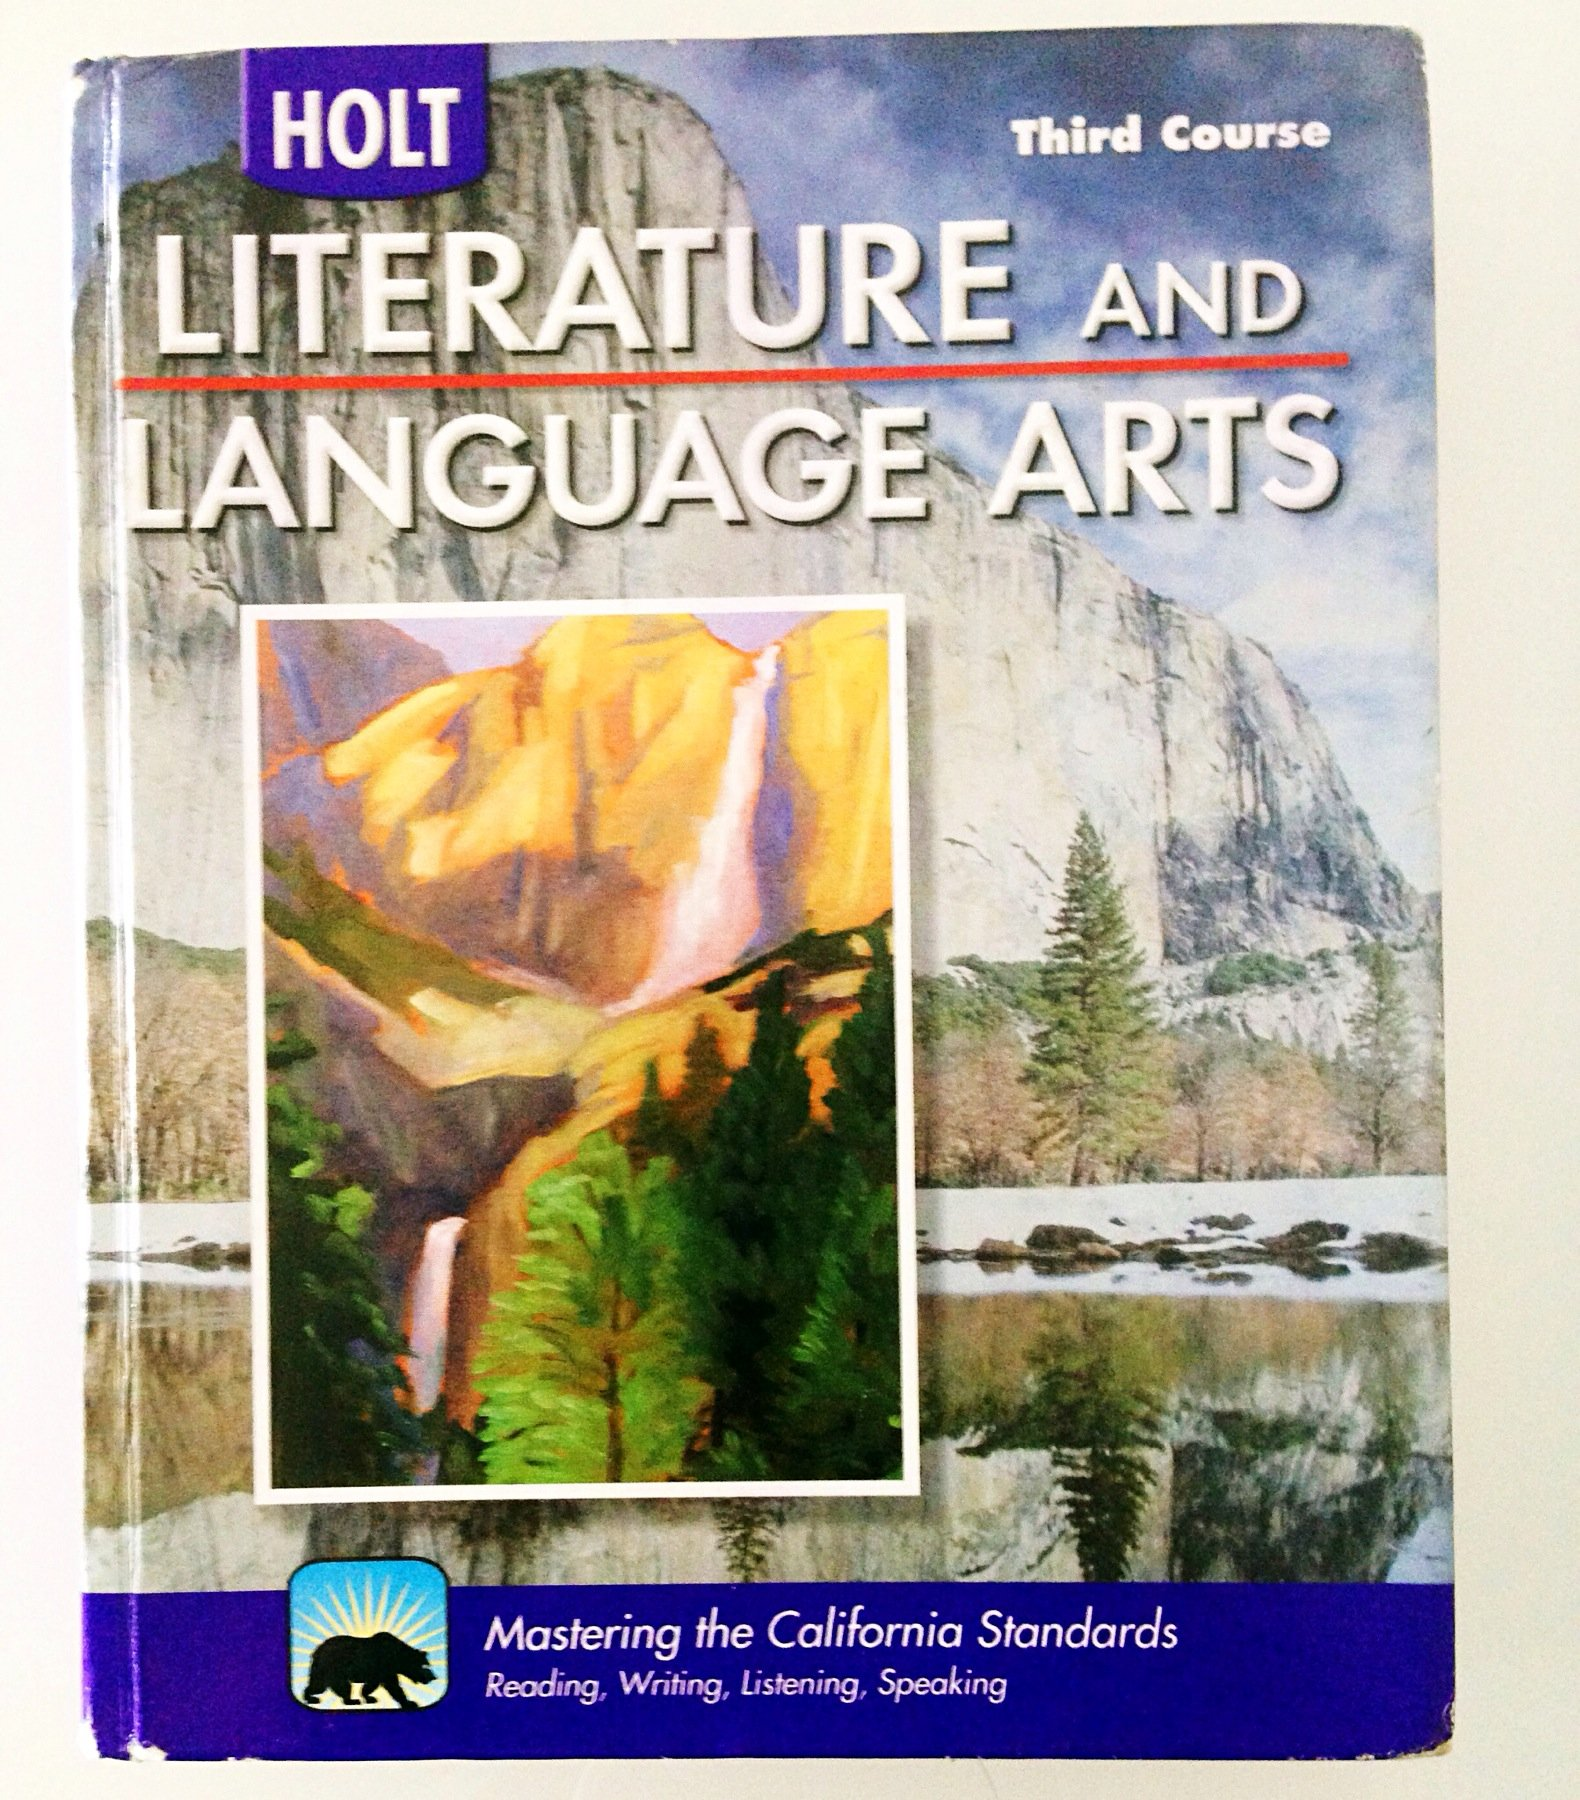 Holt Literature and Language Arts: Student Edition Grade 9 2009 by HOLT, RINEHART AND WINSTON